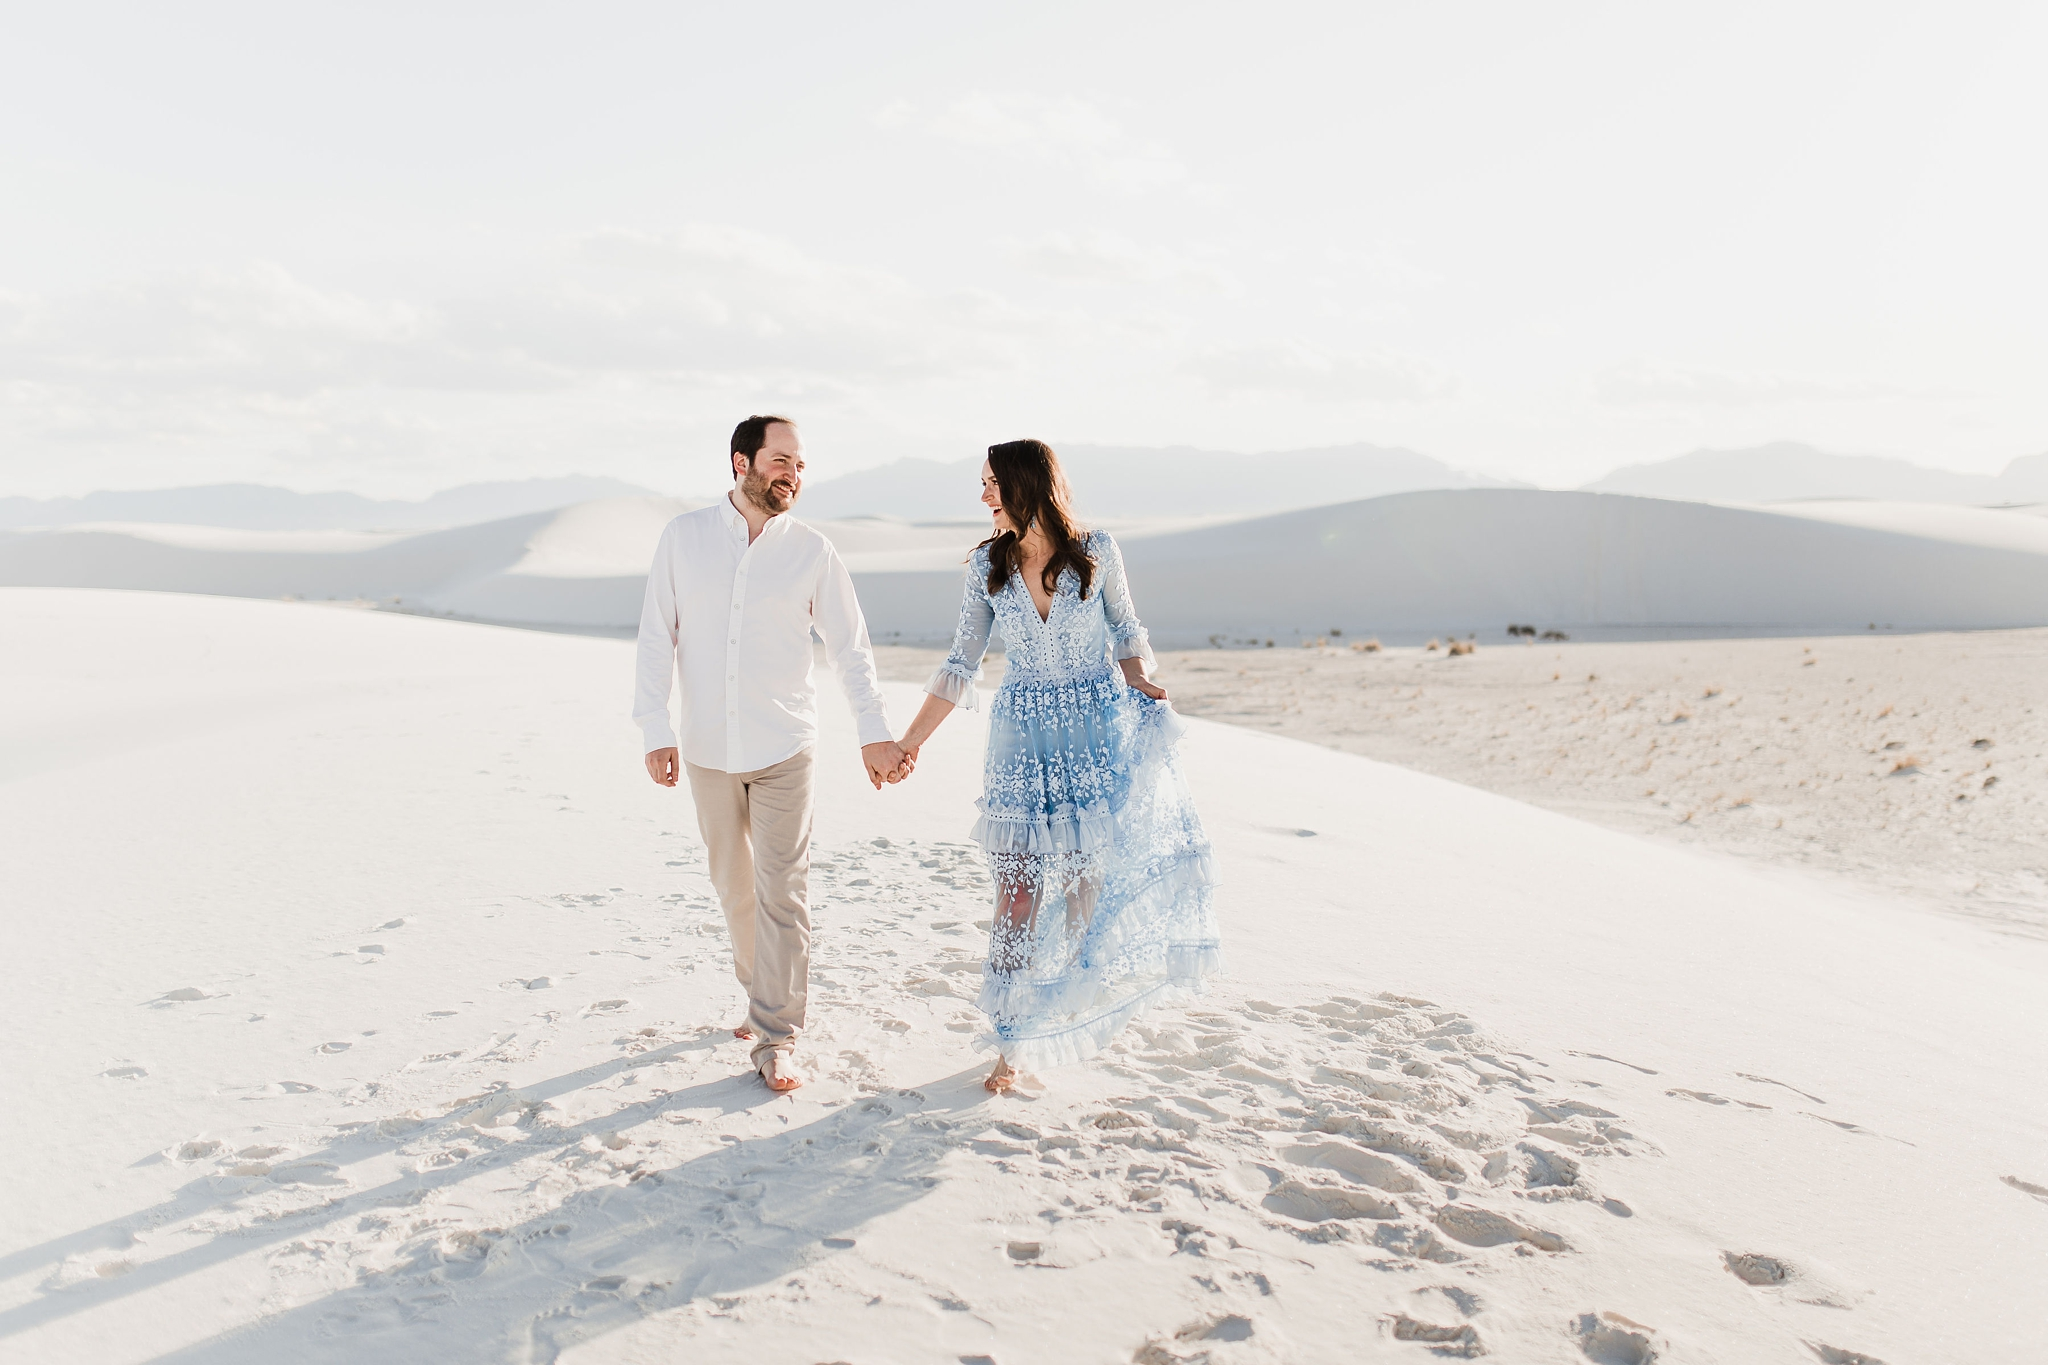 Alicia+lucia+photography+-+albuquerque+wedding+photographer+-+santa+fe+wedding+photography+-+new+mexico+wedding+photographer+-+new+mexico+wedding+-+new+mexico+engagement+-+white+sands+engagement+-+white+sands+national+monument_0003.jpg